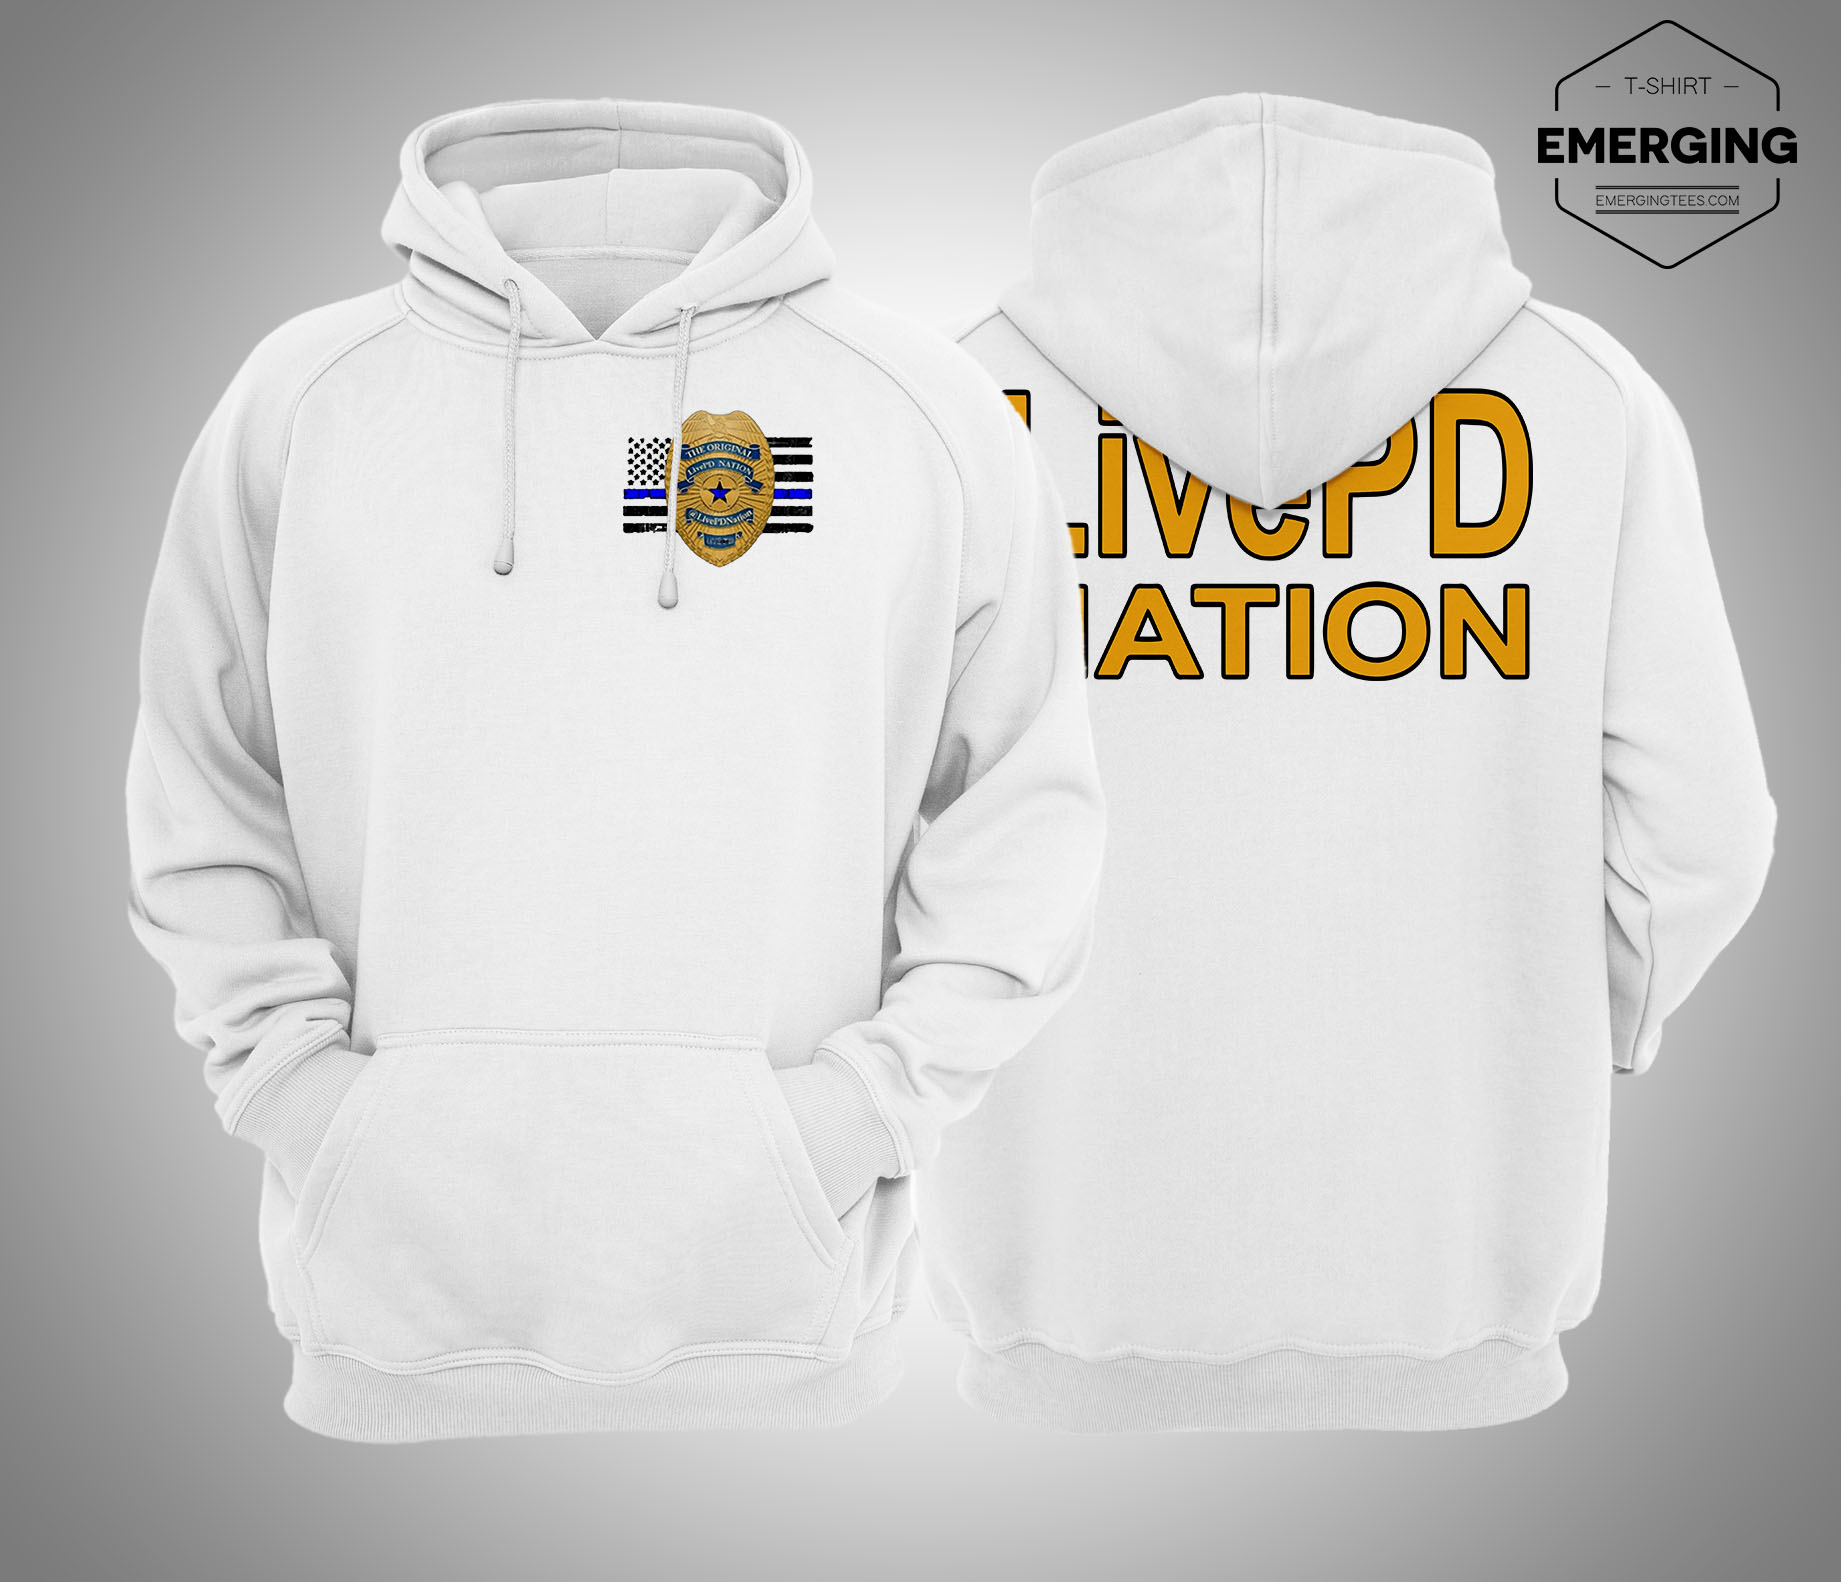 Eric Daw Livepd Nation Hoodie